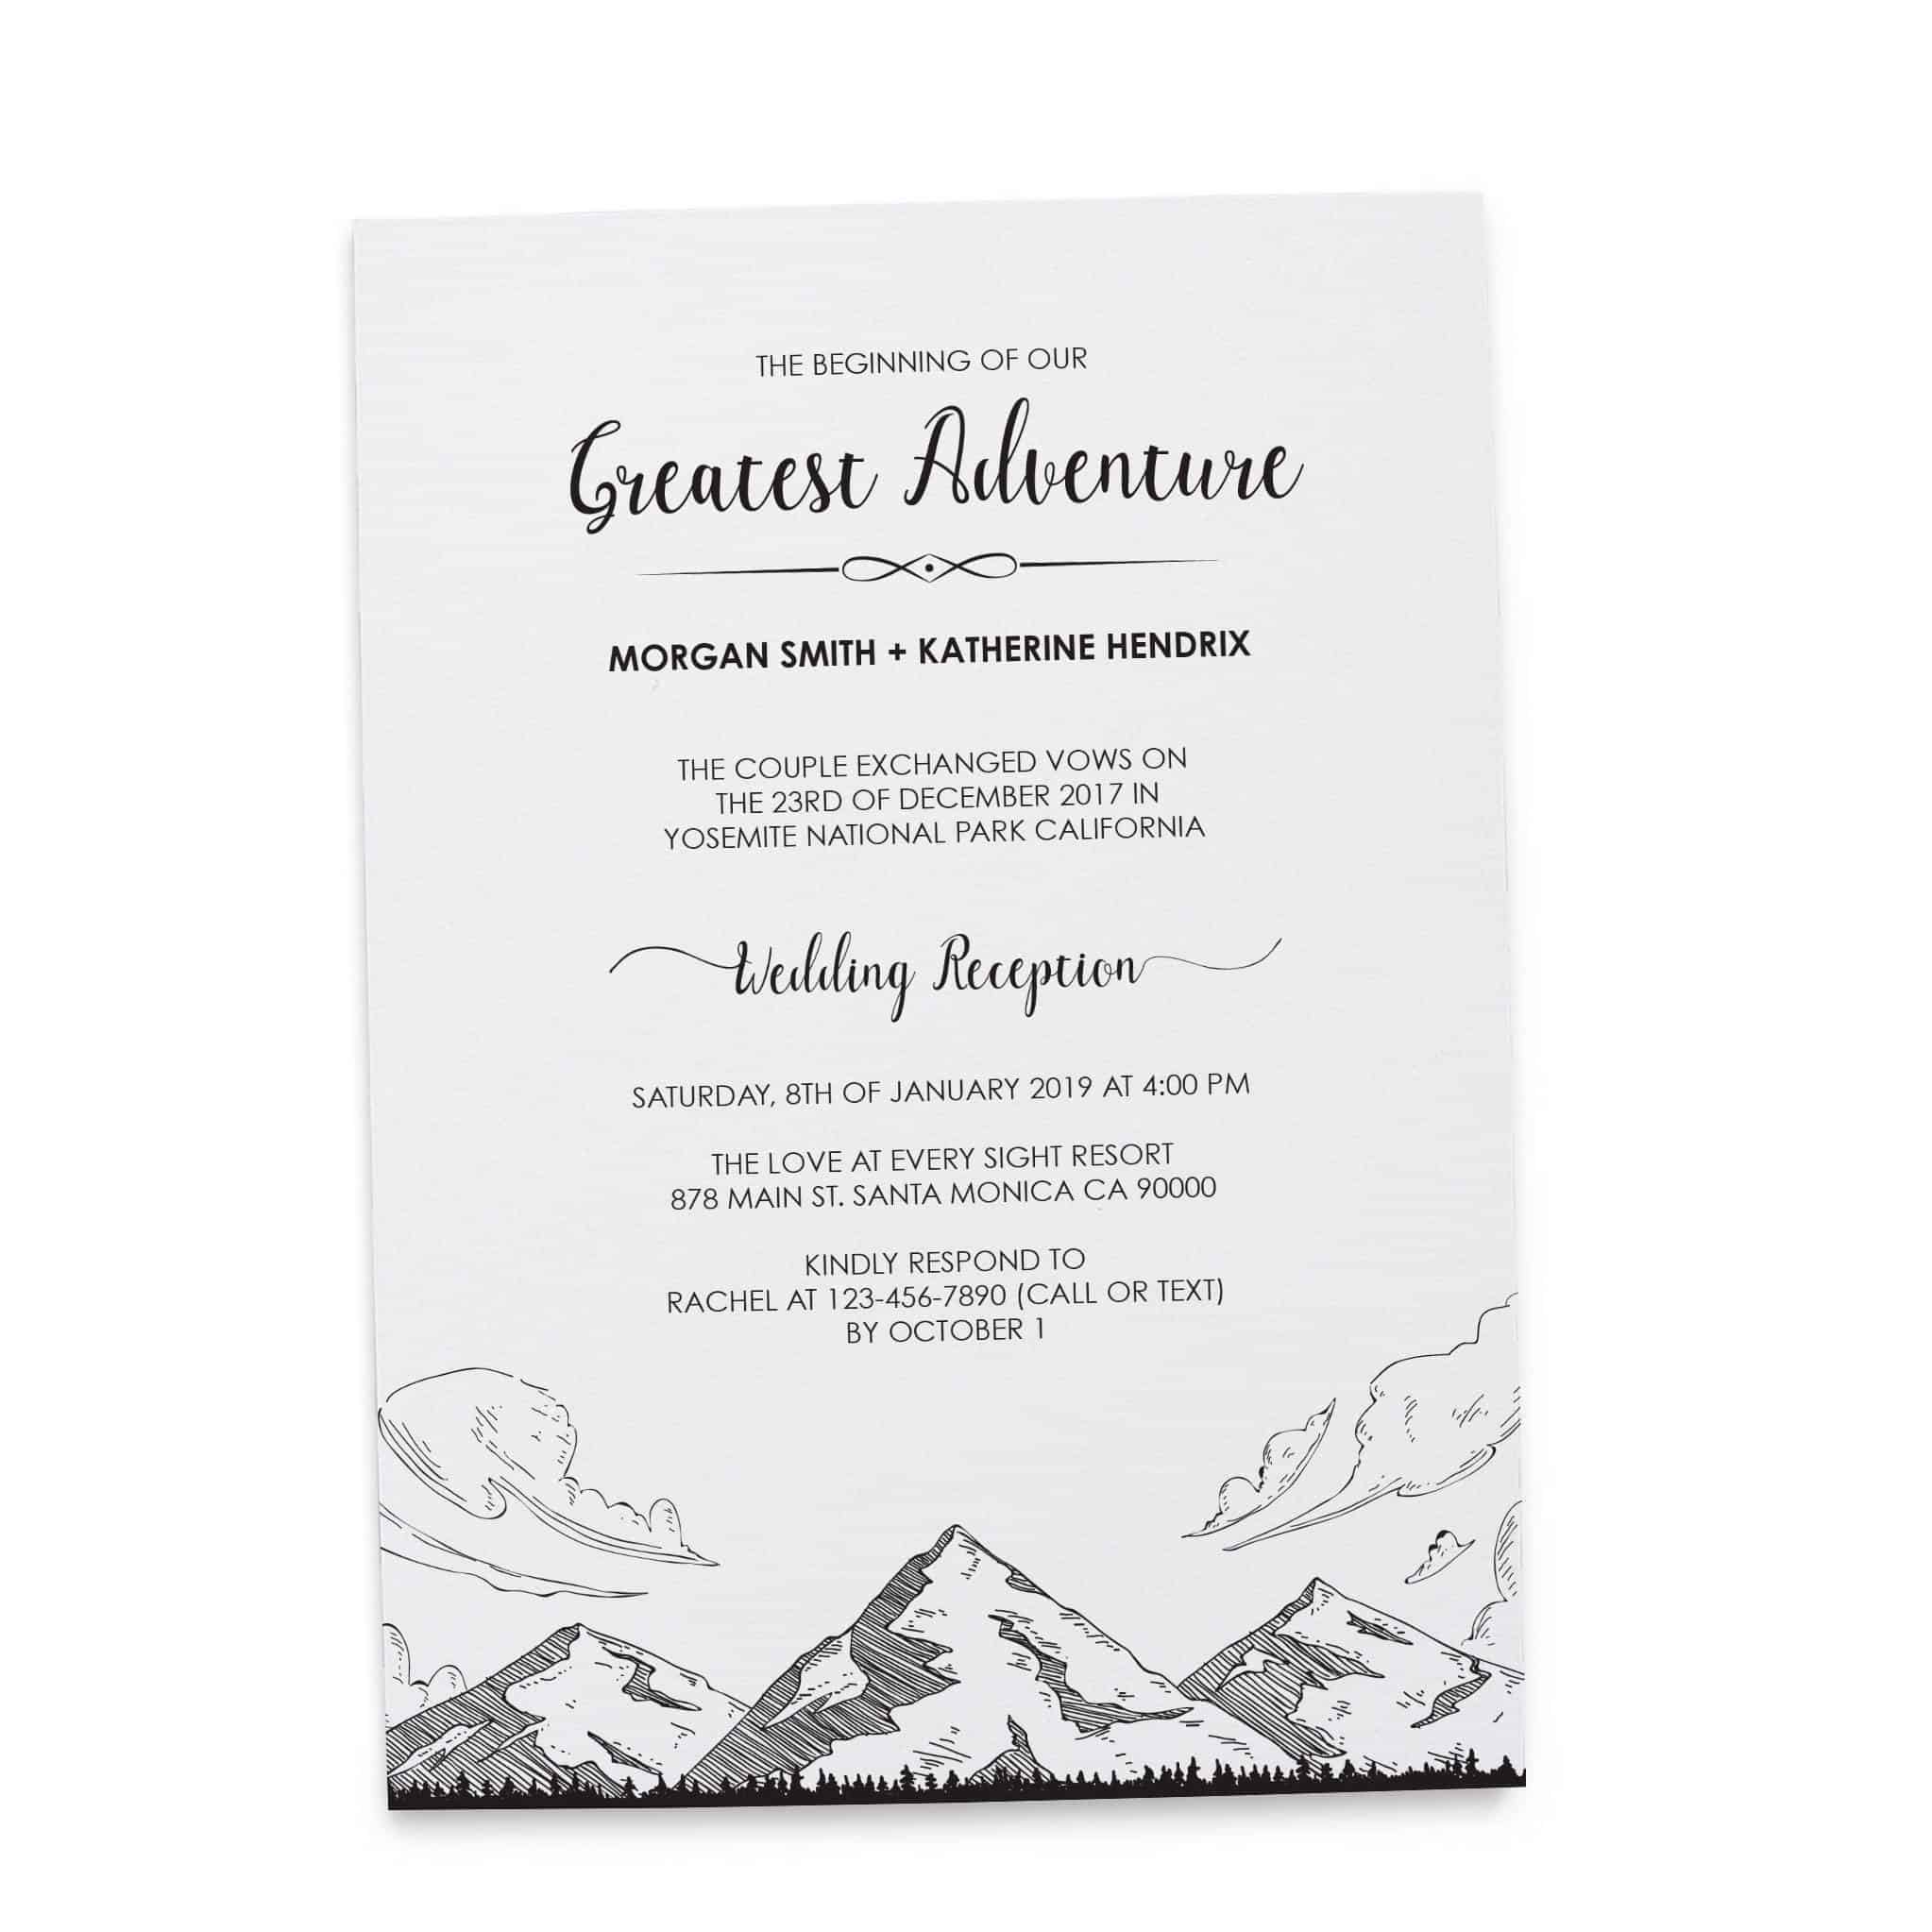 The Beginning of Our Greatest Adventure Wedding Reception Invitation ...